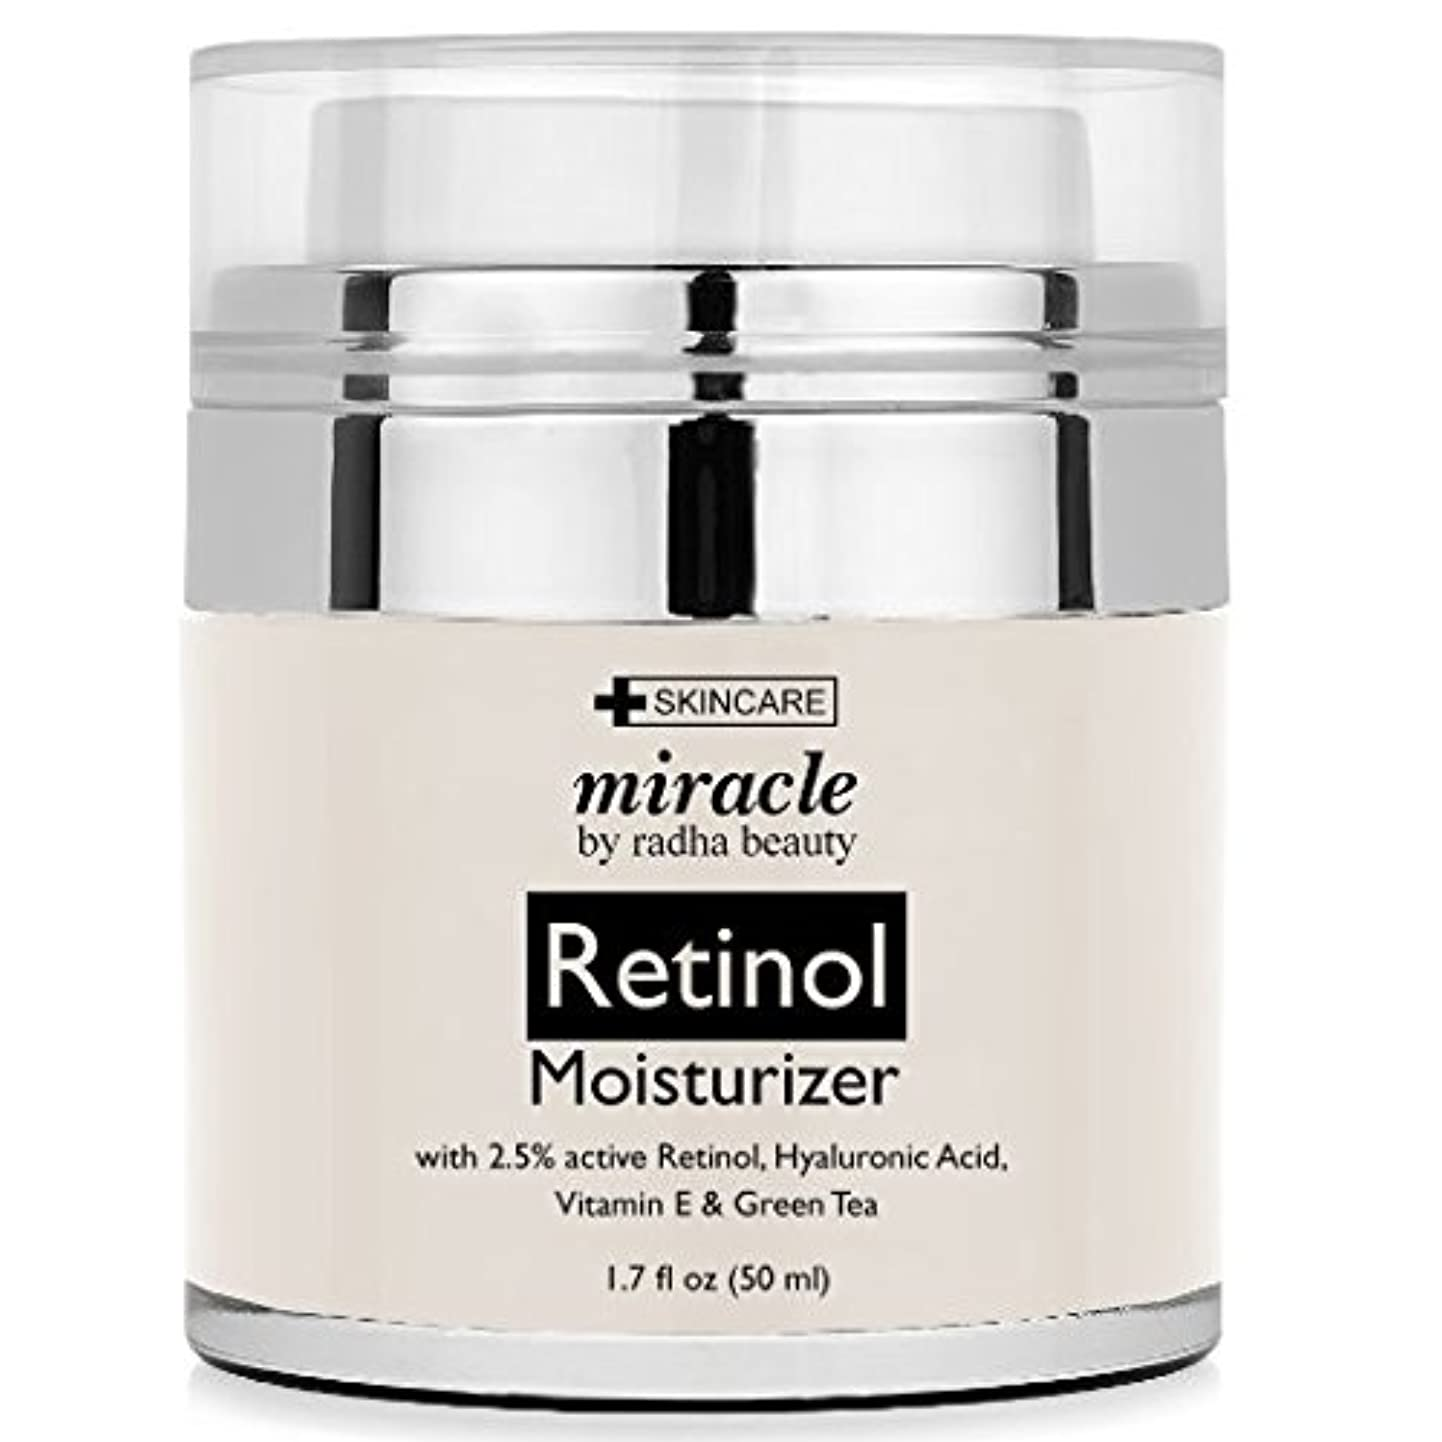 レチノール 保湿クリーム Retinol Moisturizer Cream for Face - With Retinol, Hyaluronic Acid, Tea Tree Oil and Jojoba Oil、 ...